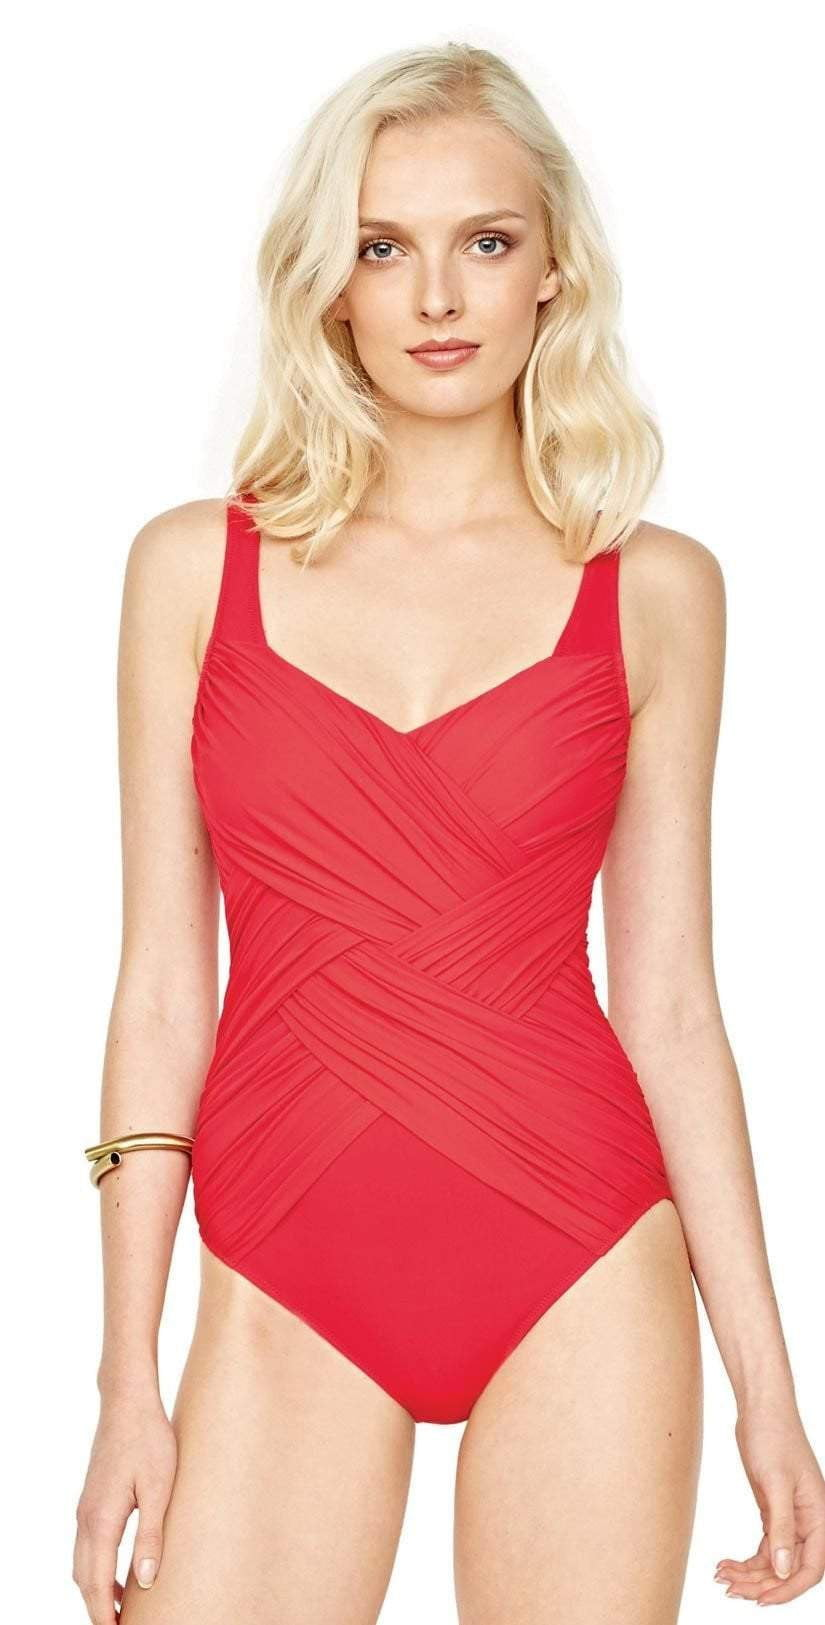 Gottex Contour Lattice Square Neck One Piece in Red 18LA-174-600: